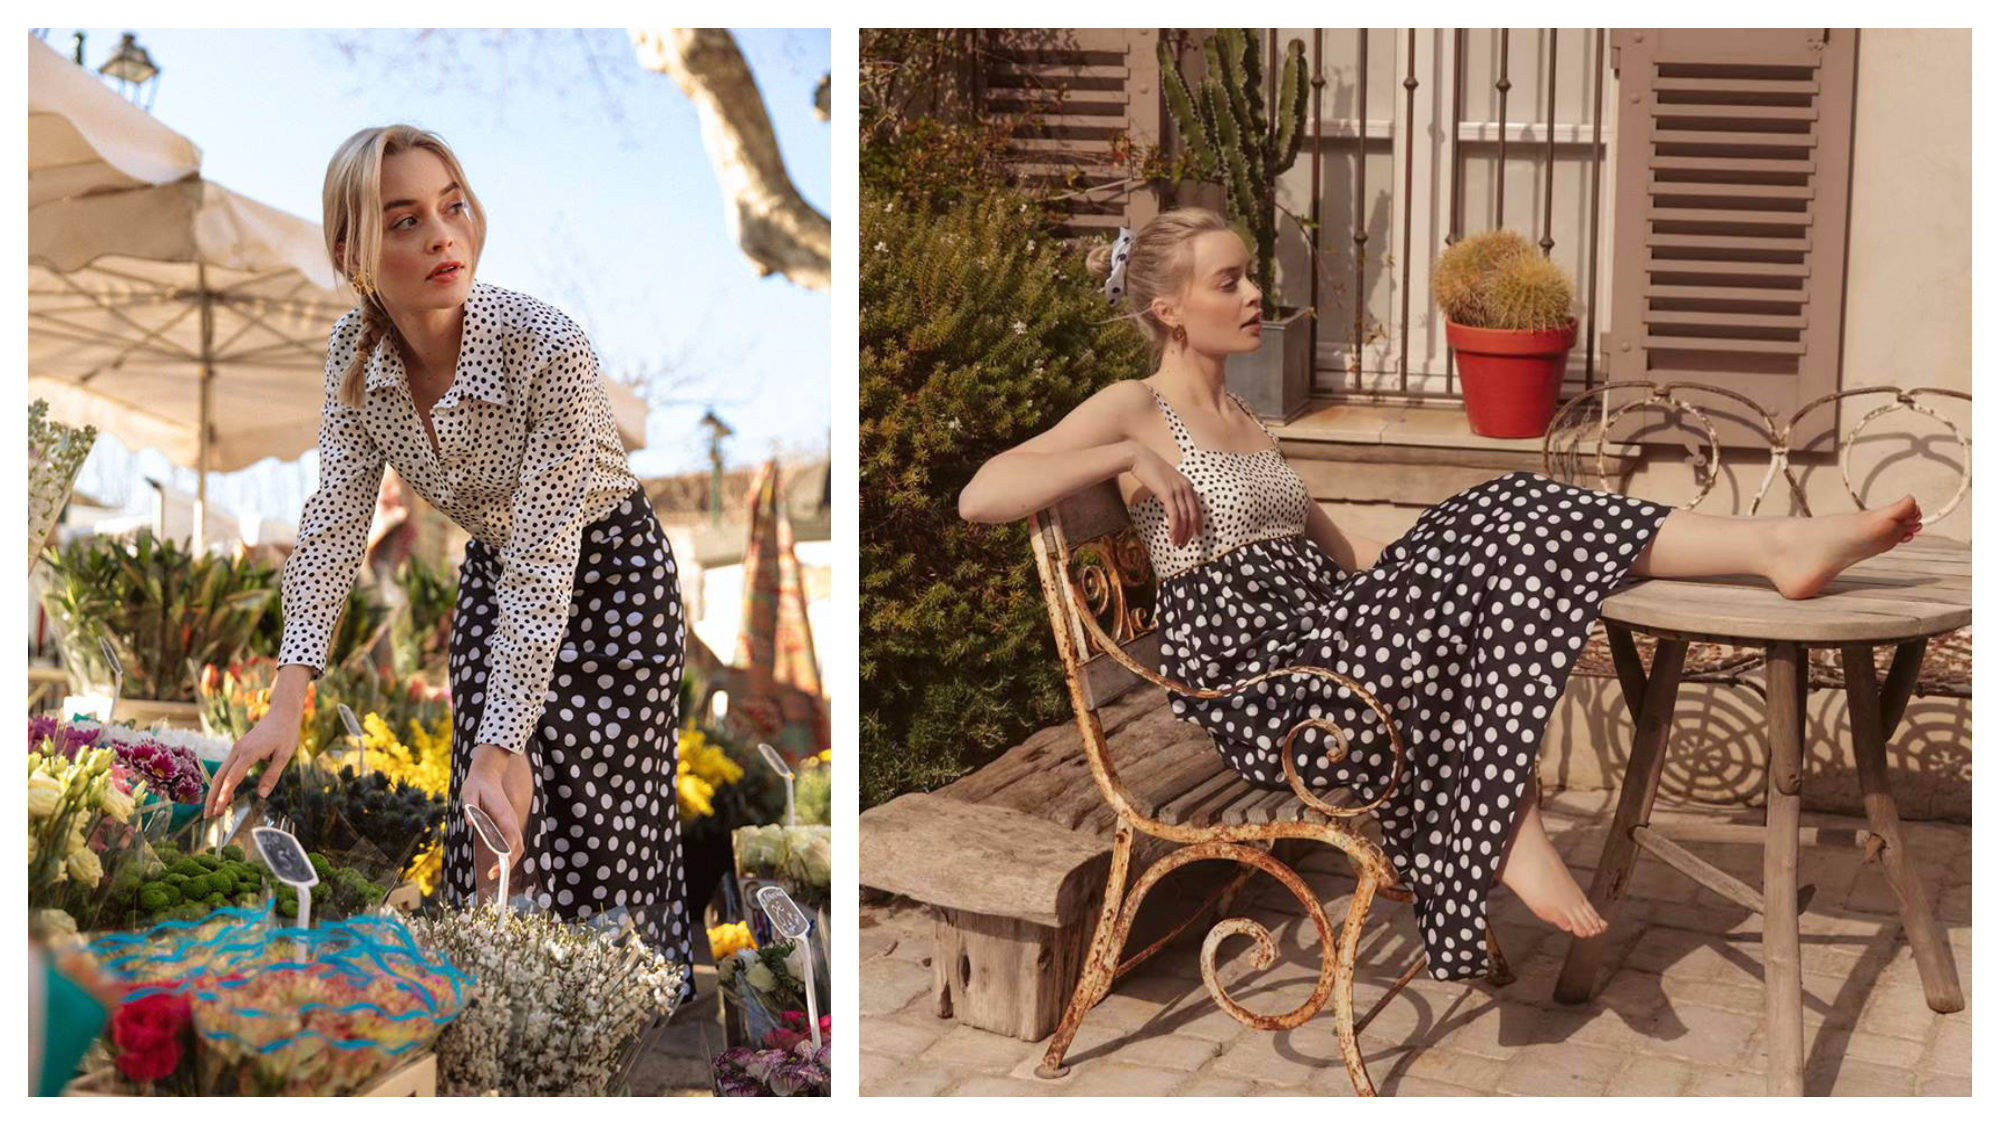 A woman wearing a polka dot white shirt and long polka dot skirt from influencer Jeanne Damas' French fashion brand Rouje, bending down to look at flowers at a market in Paris (left). The same woman wearing a white polka dot vest and long black polka dot skirt, sitting on an old wooden bench in the courtyard outside her apartment in Paris.